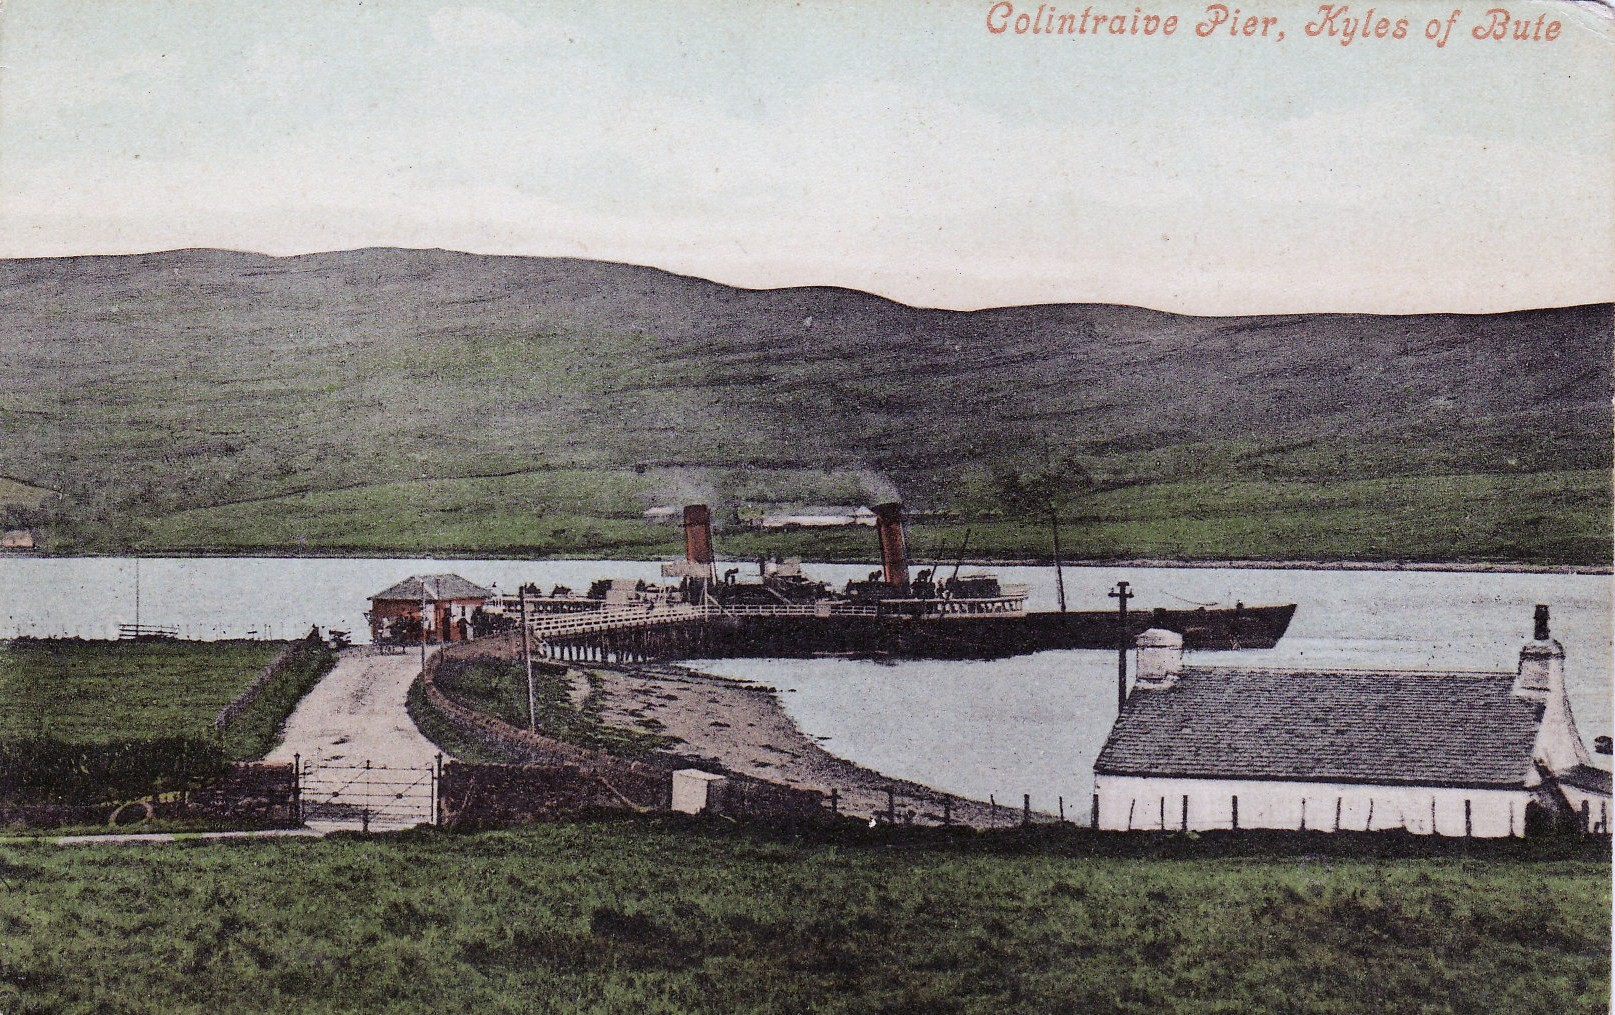 The Iona at Colintraive Pier